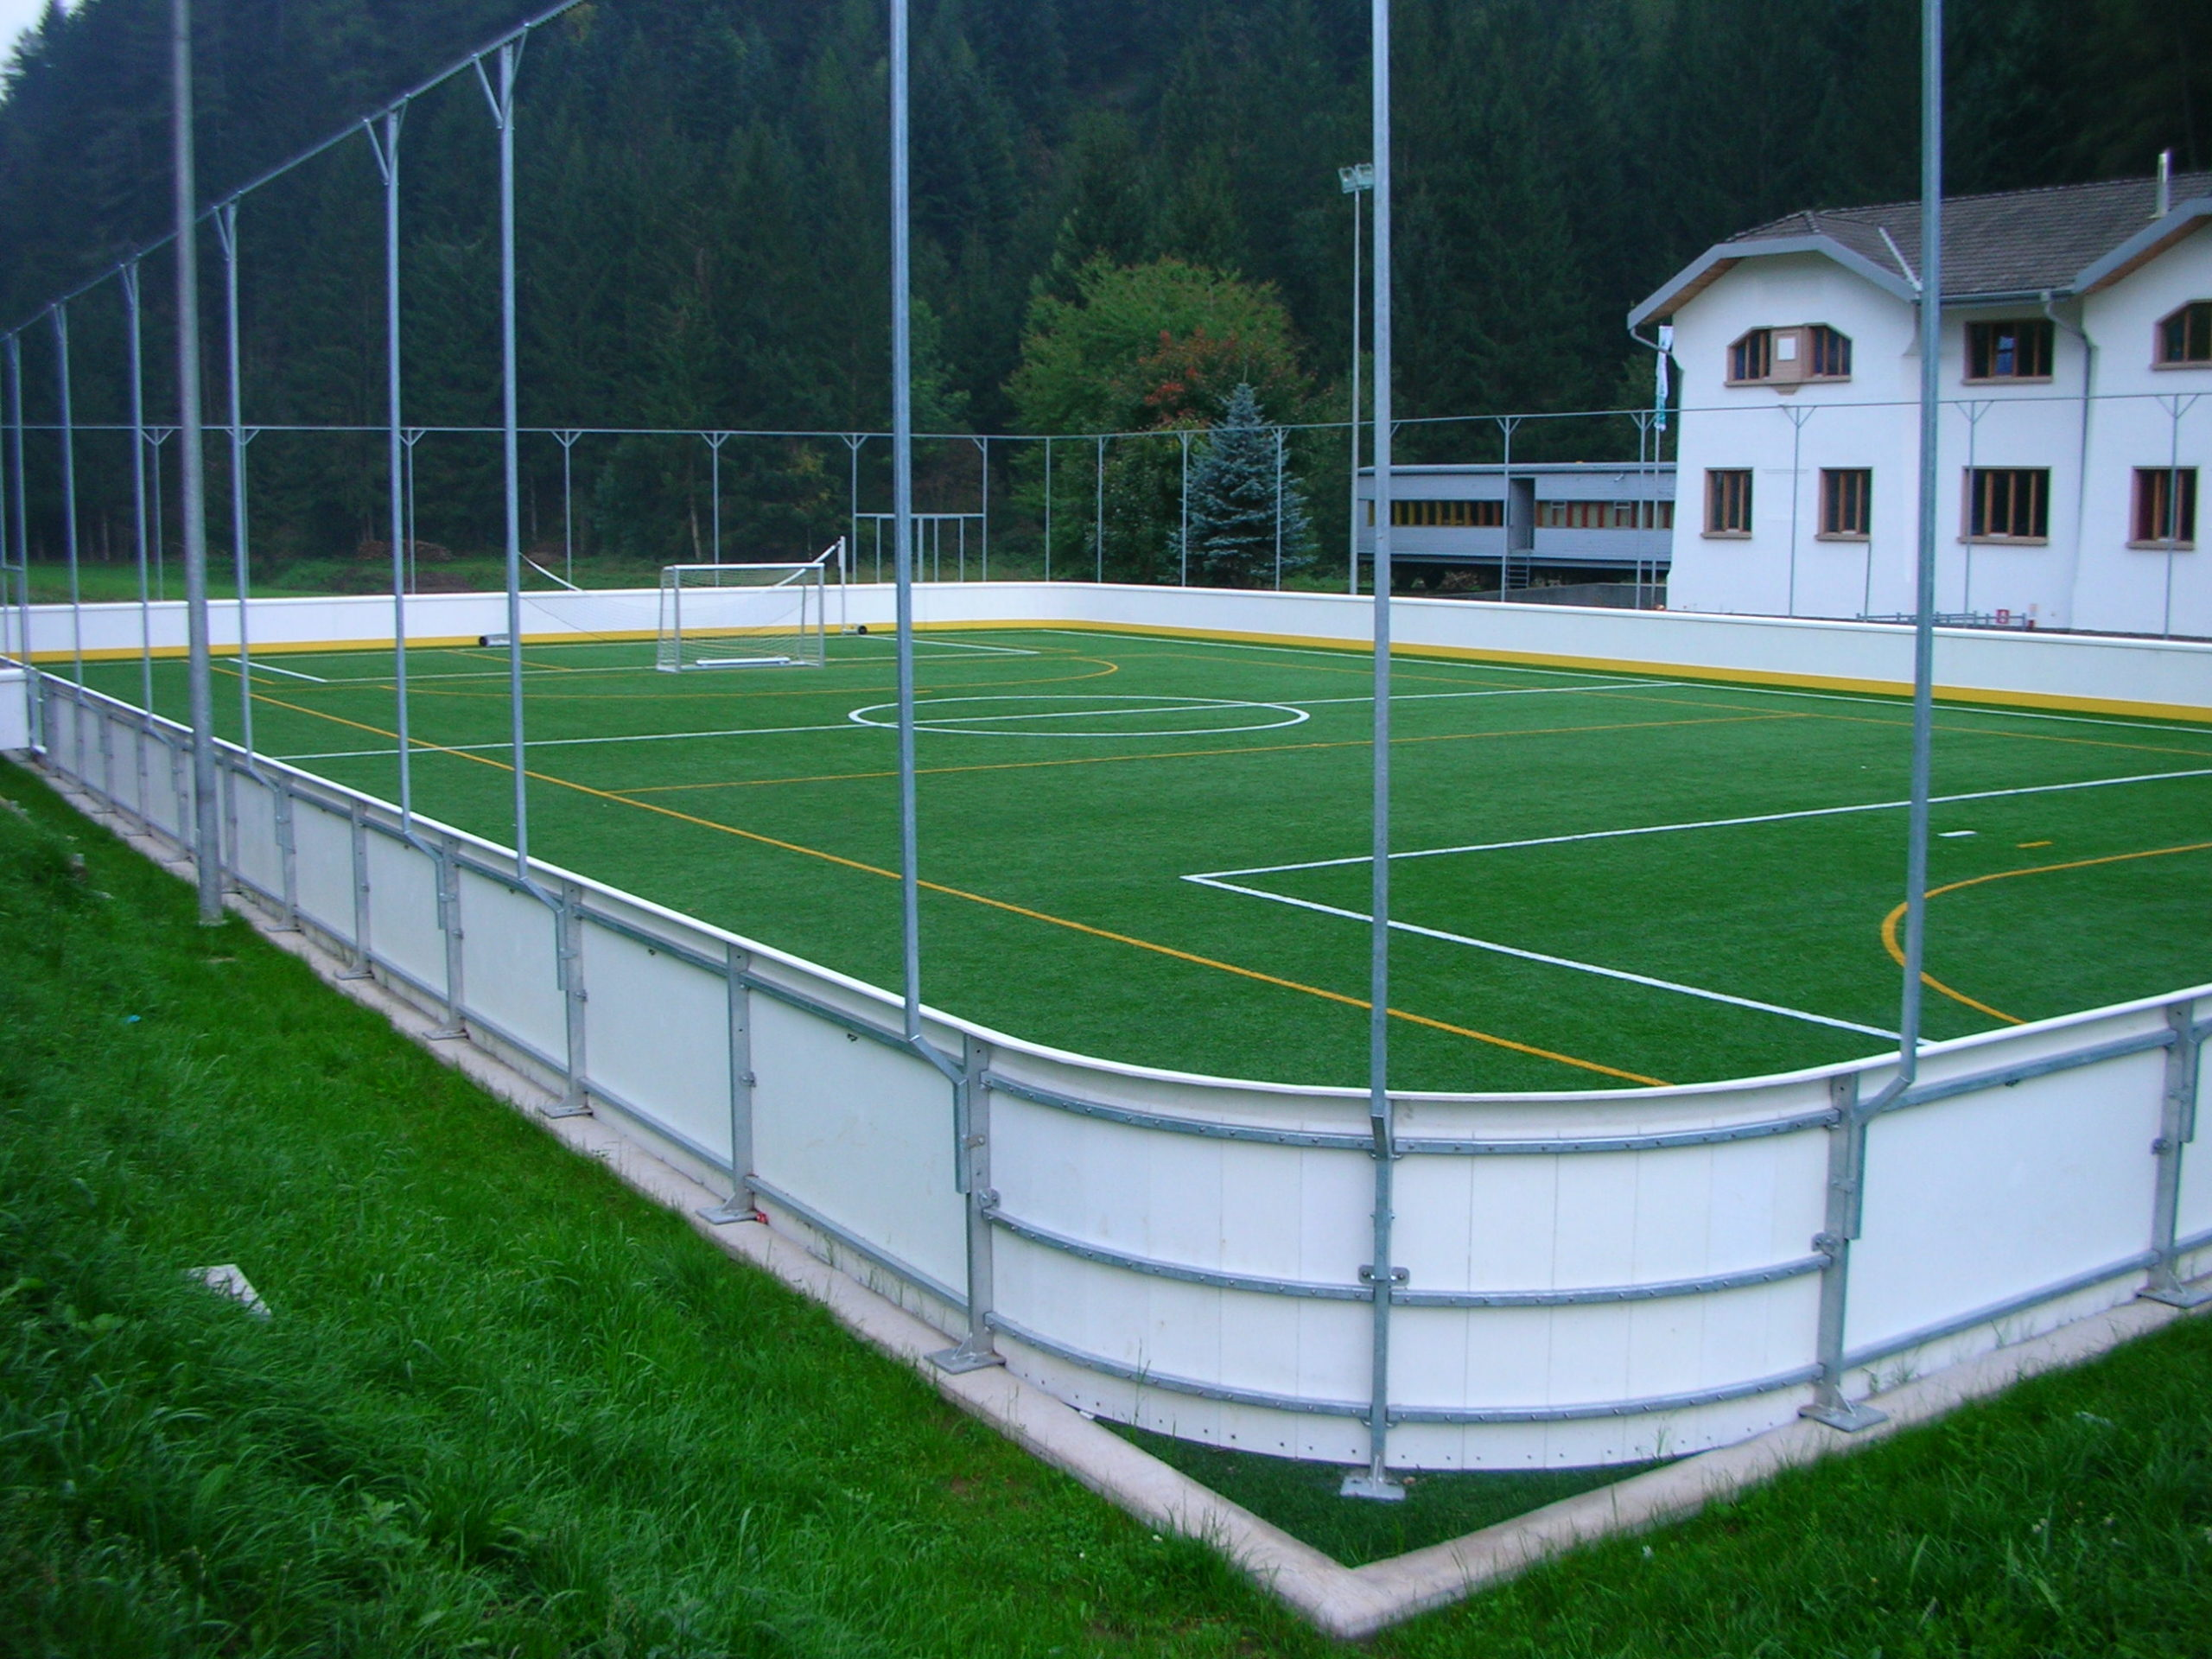 Recreational-sports facilities